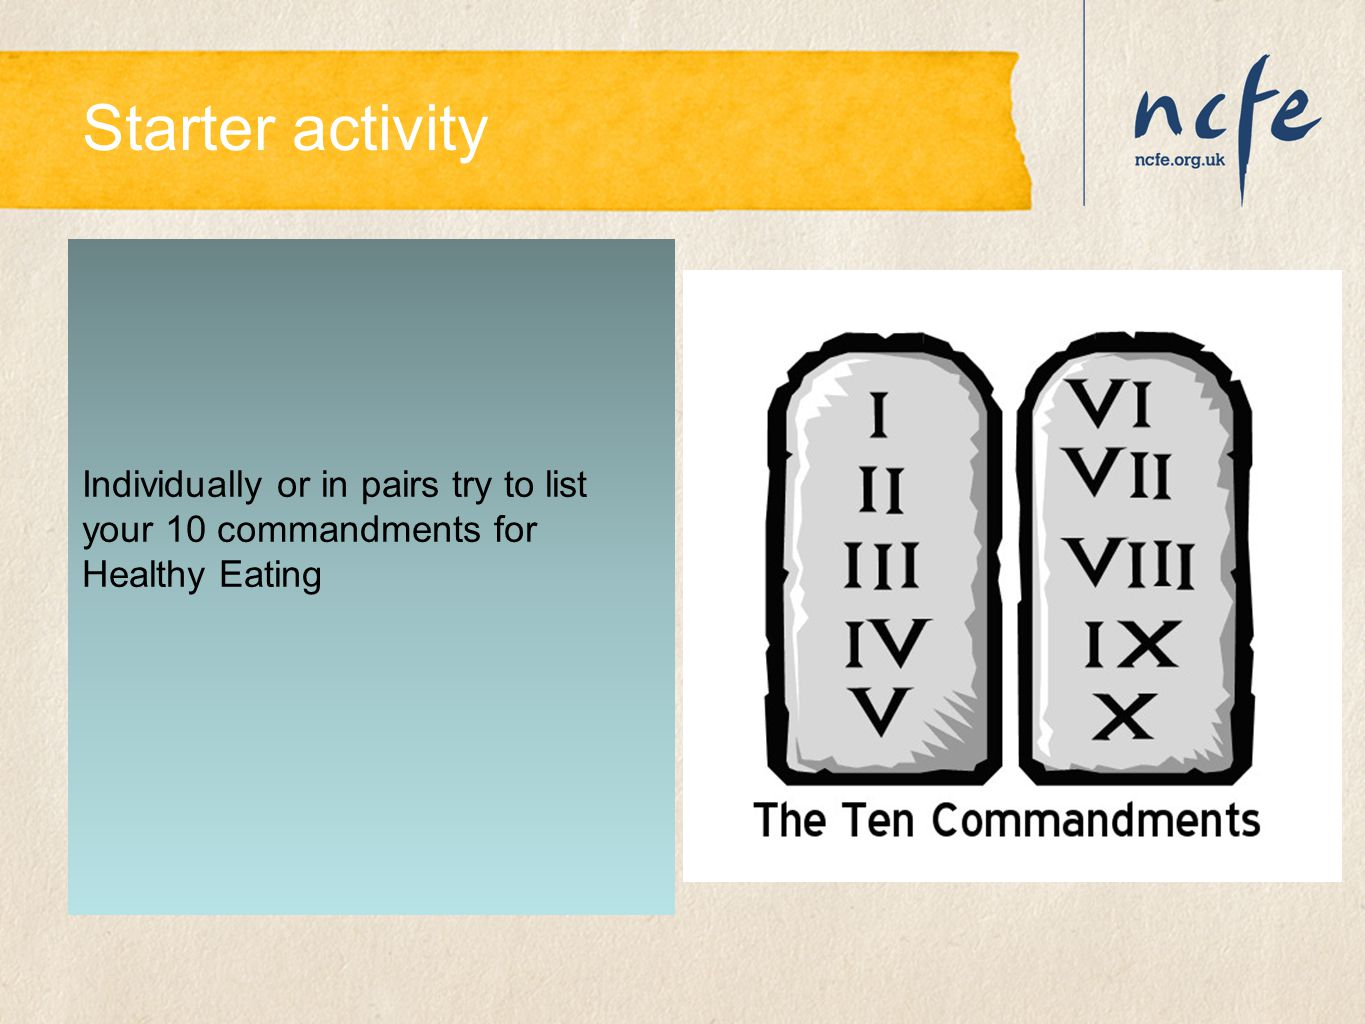 Starter activity Individually or in pairs try to list your 10 commandments for Healthy Eating